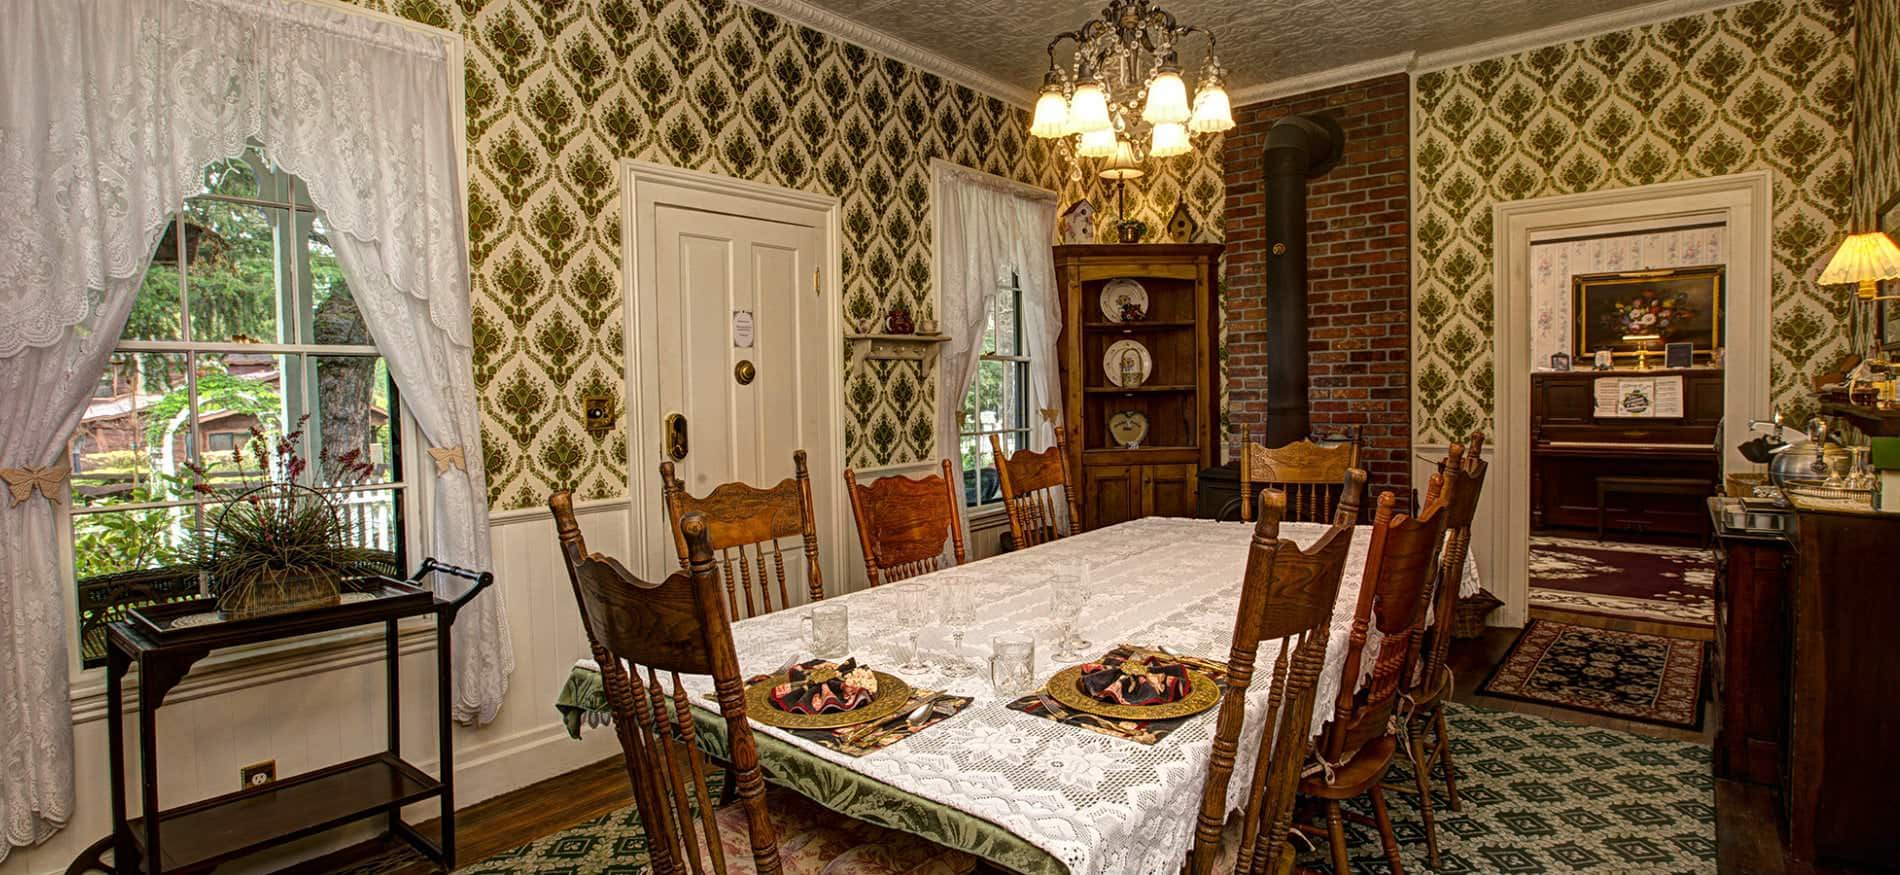 Dining room with green and white papered walls, windows with white lace curtains, and wood table with eight chairs